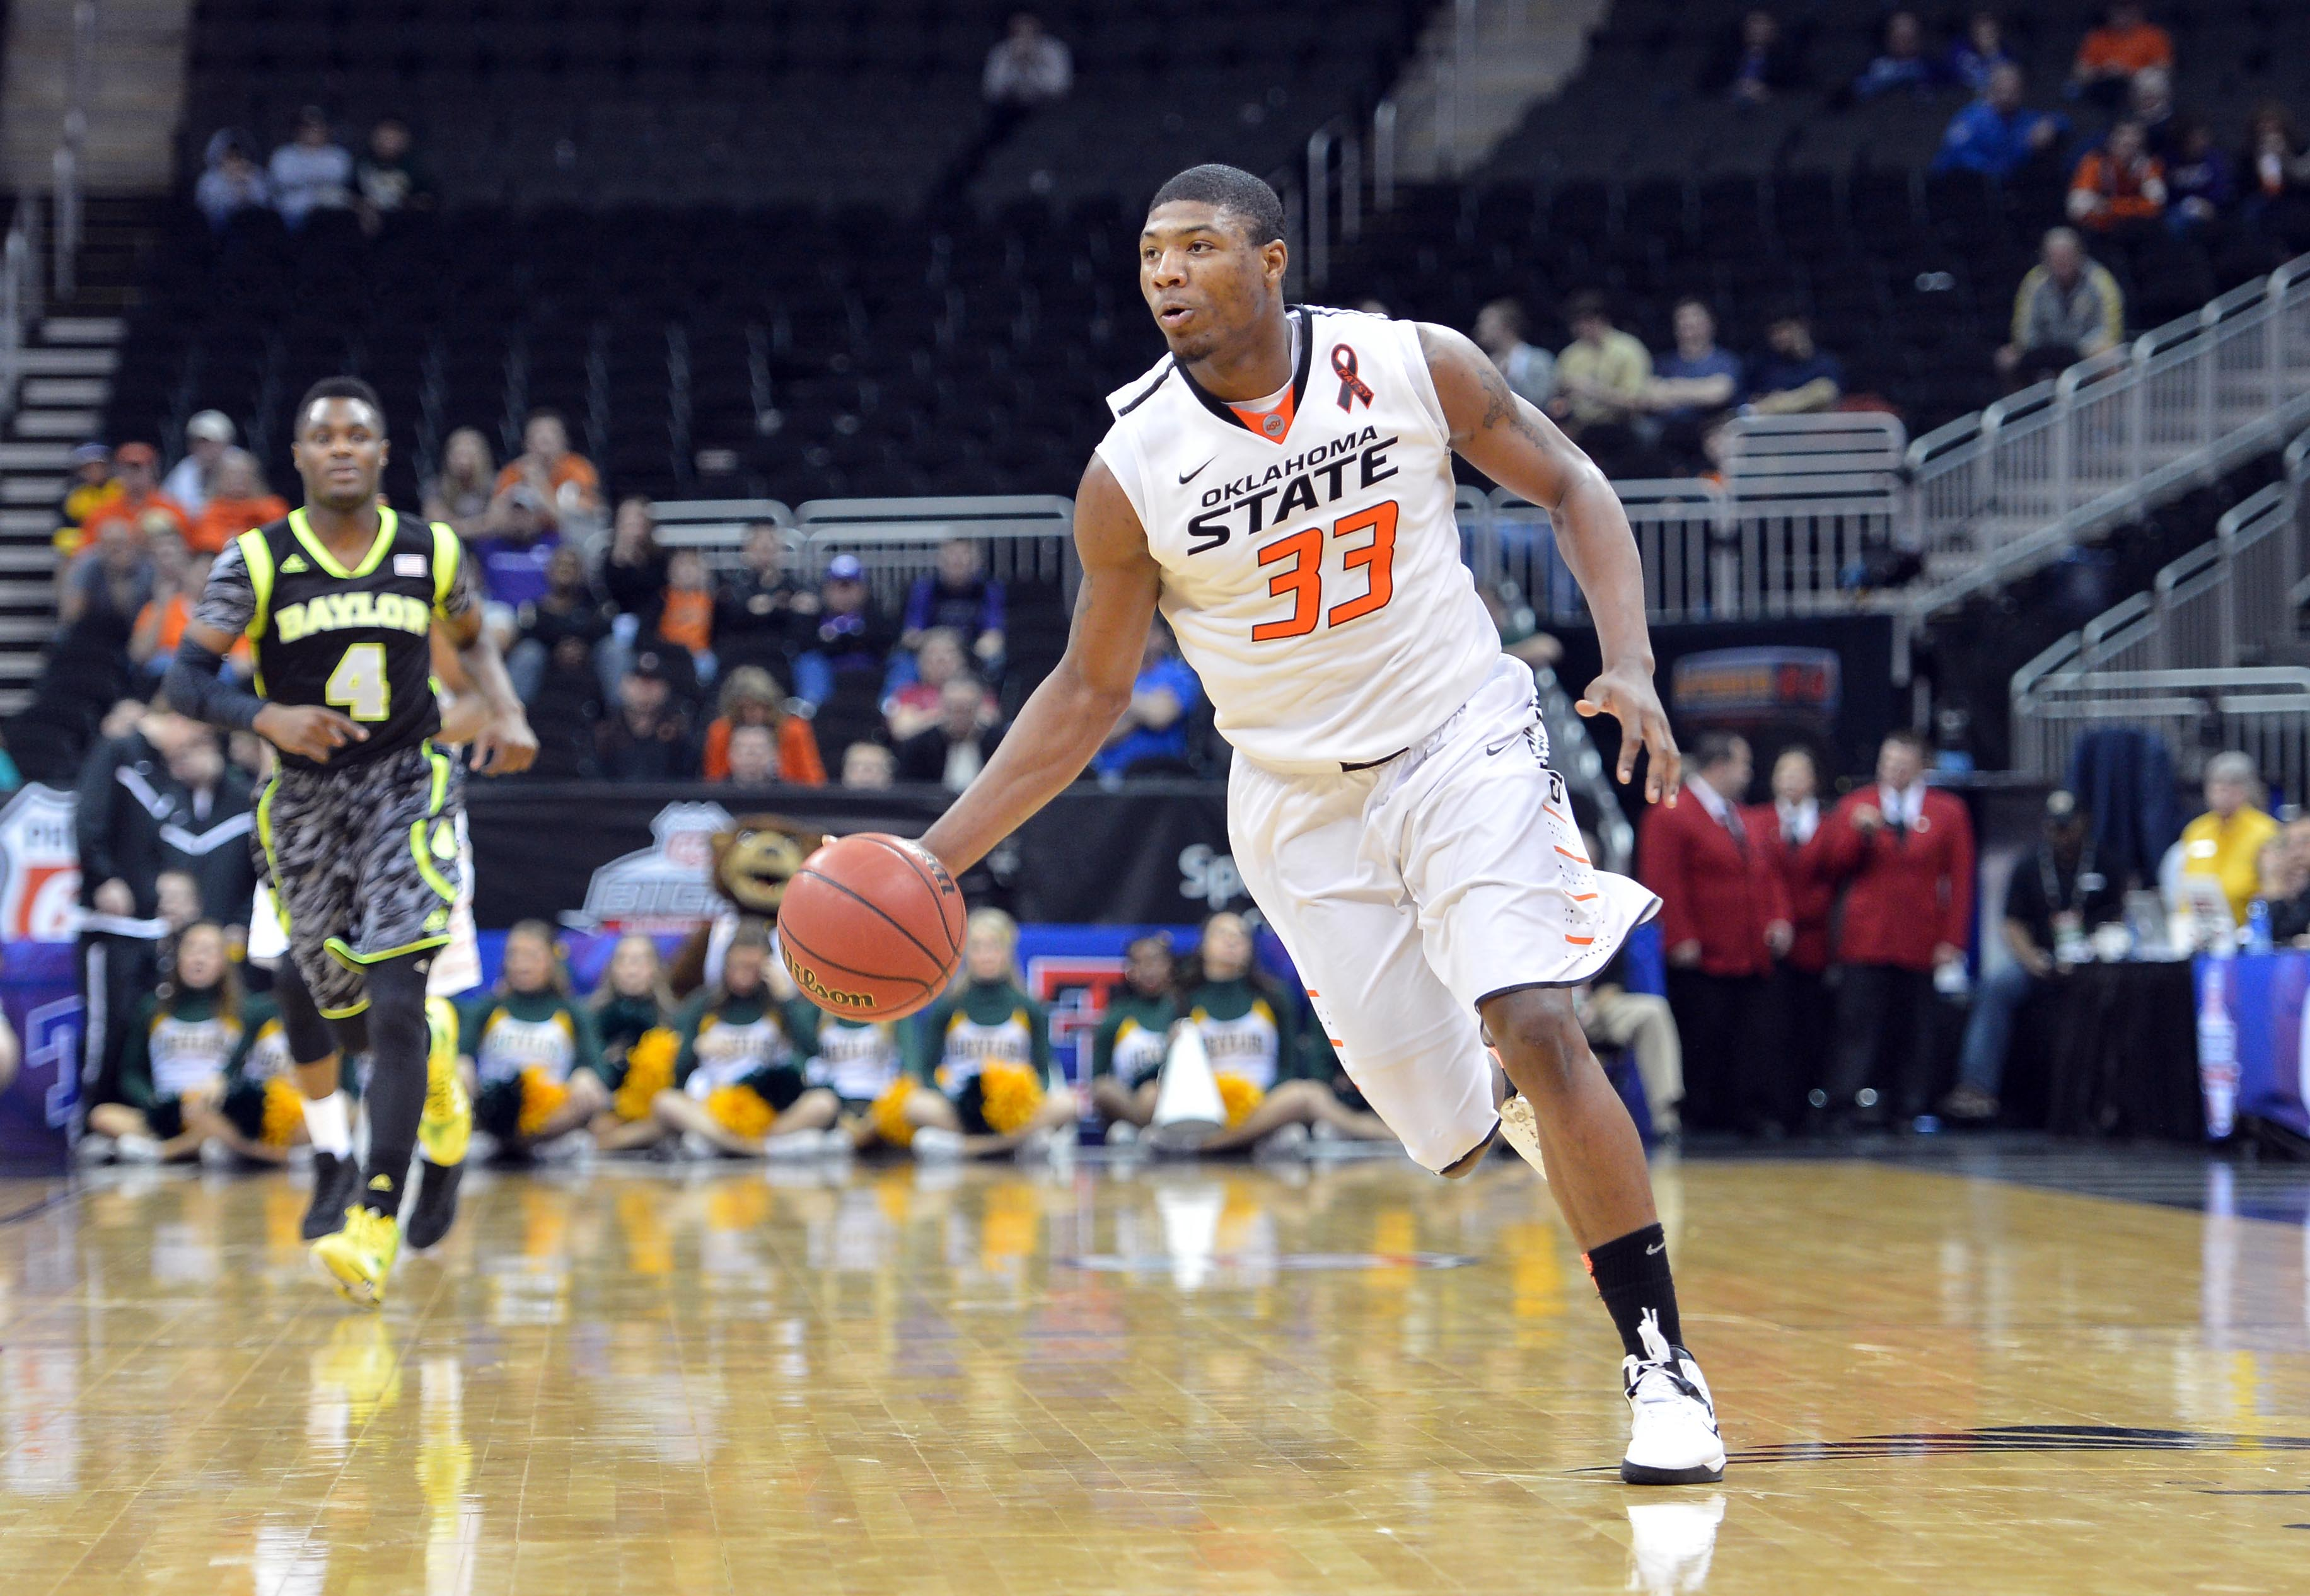 Marcus Smart averaged 15.4 points and 5.8 rebounds last season. (USA Today Sports)